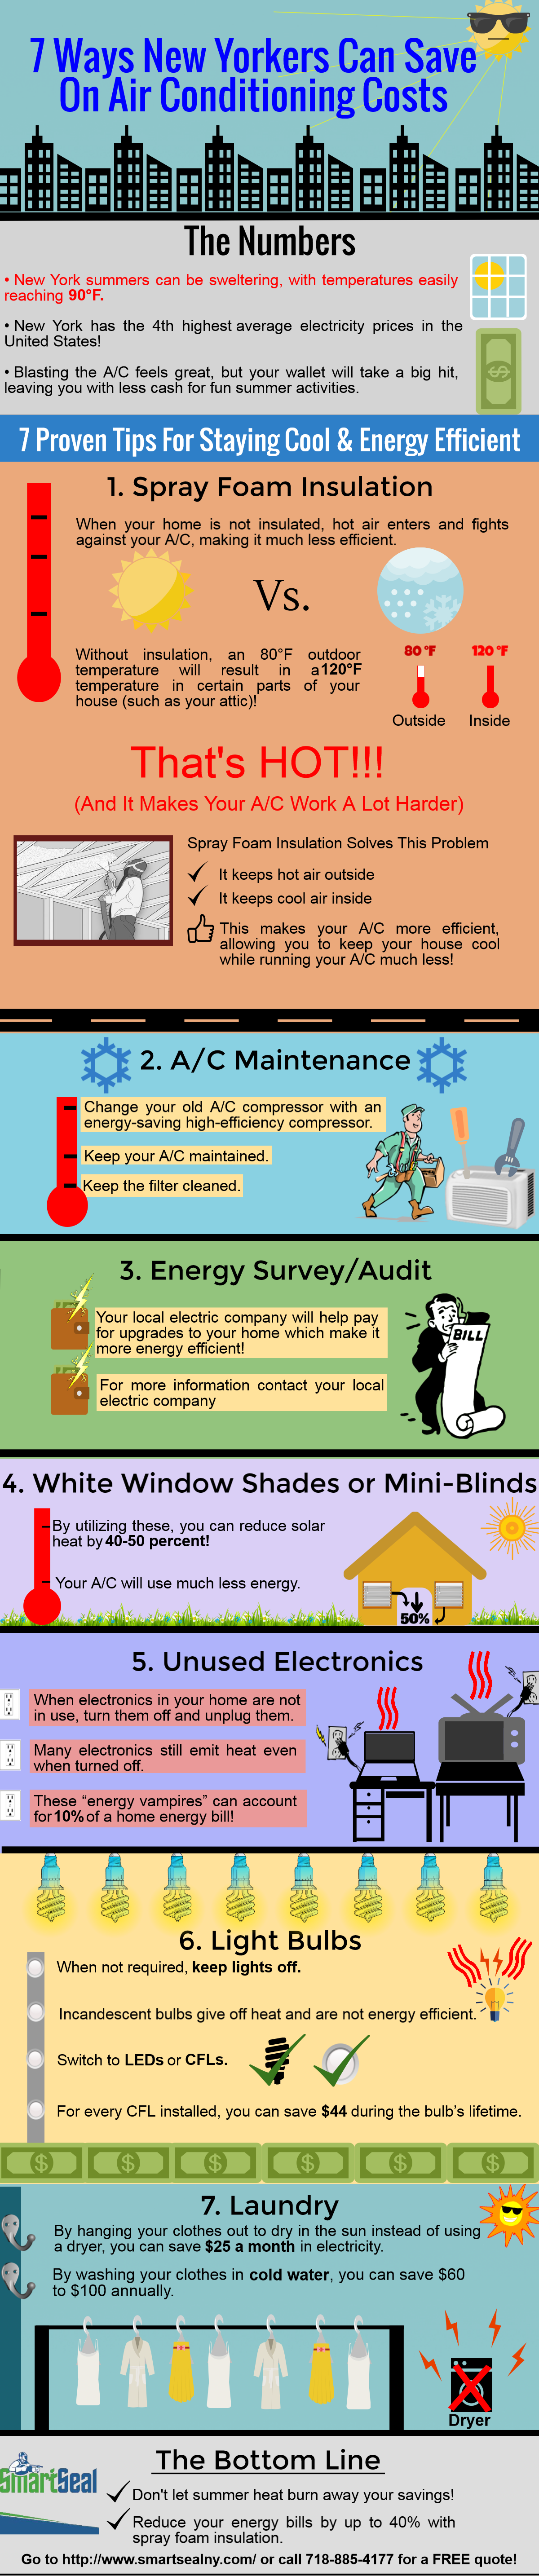 7 Ways New Yorkers Can Save on Air Conditioning Costs - Maximizing Energy Efficiency